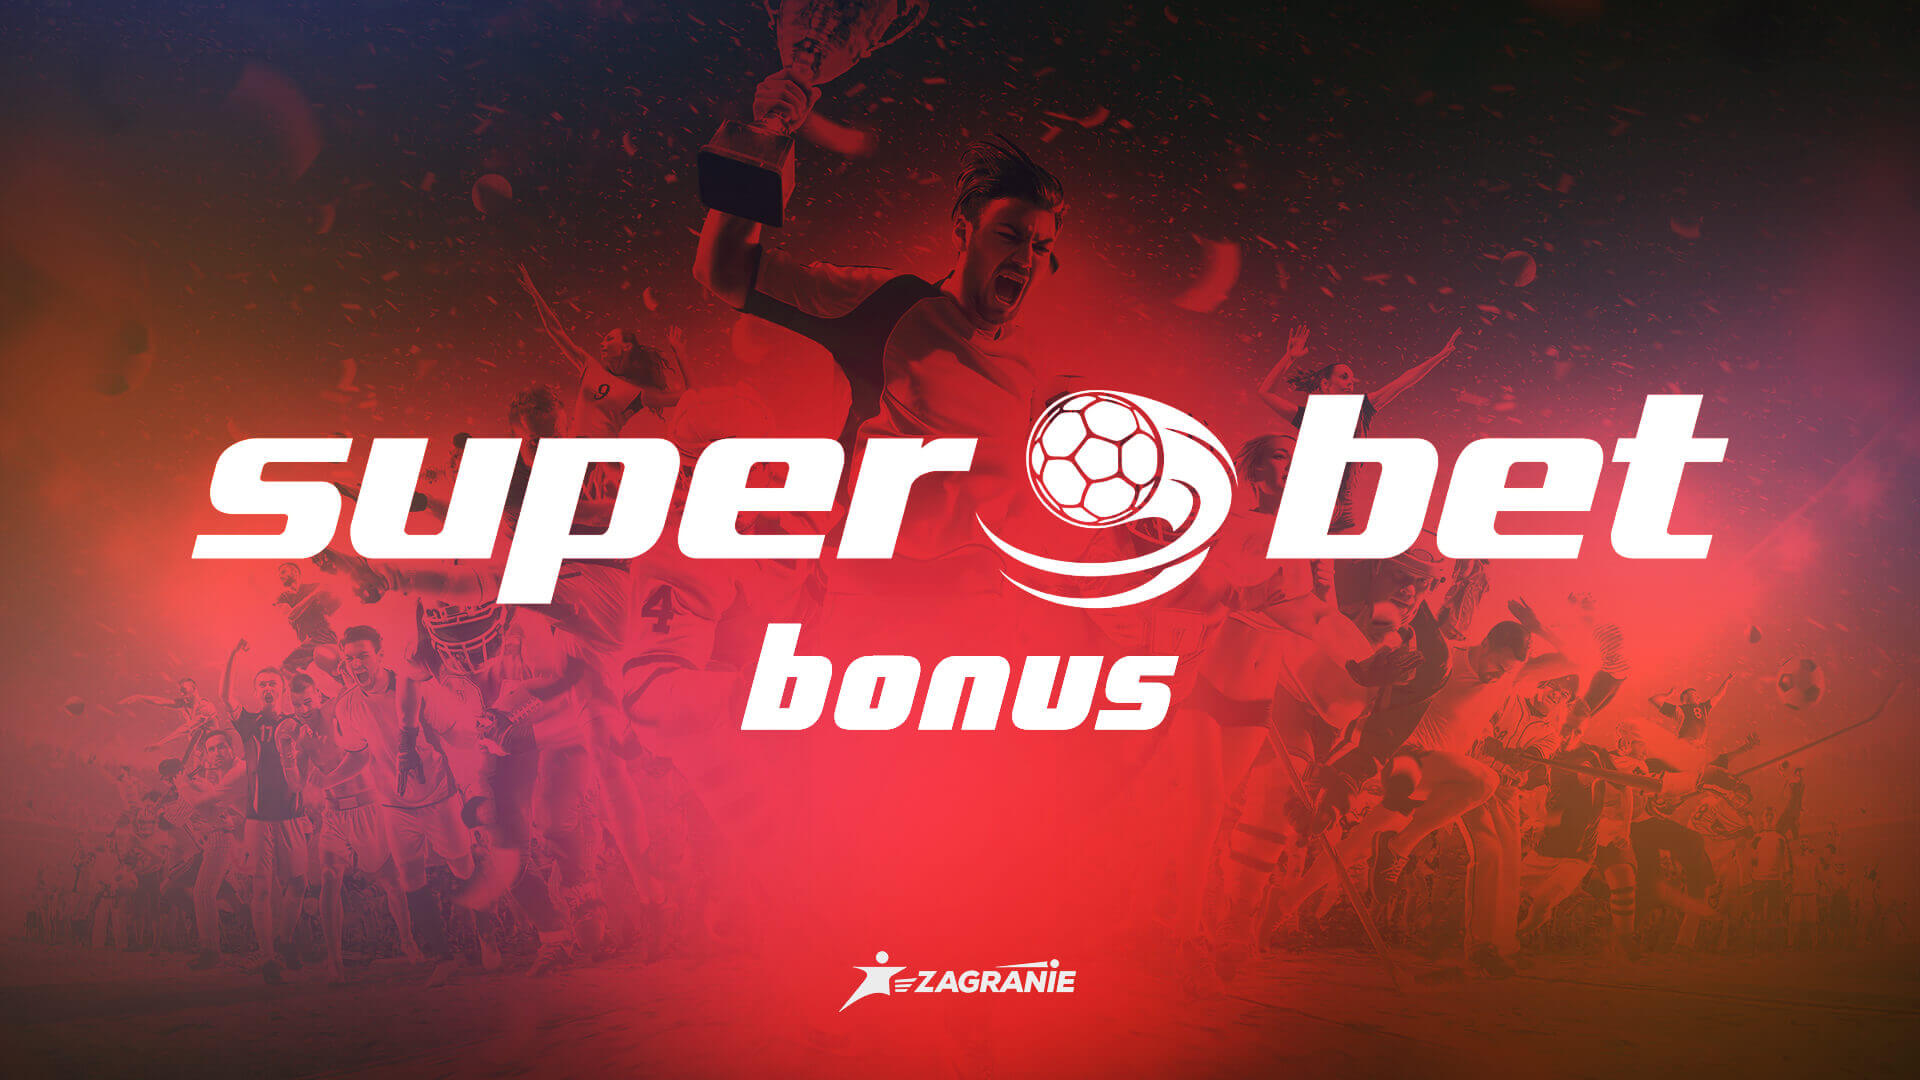 Okładka do tekstu Superbet bonus